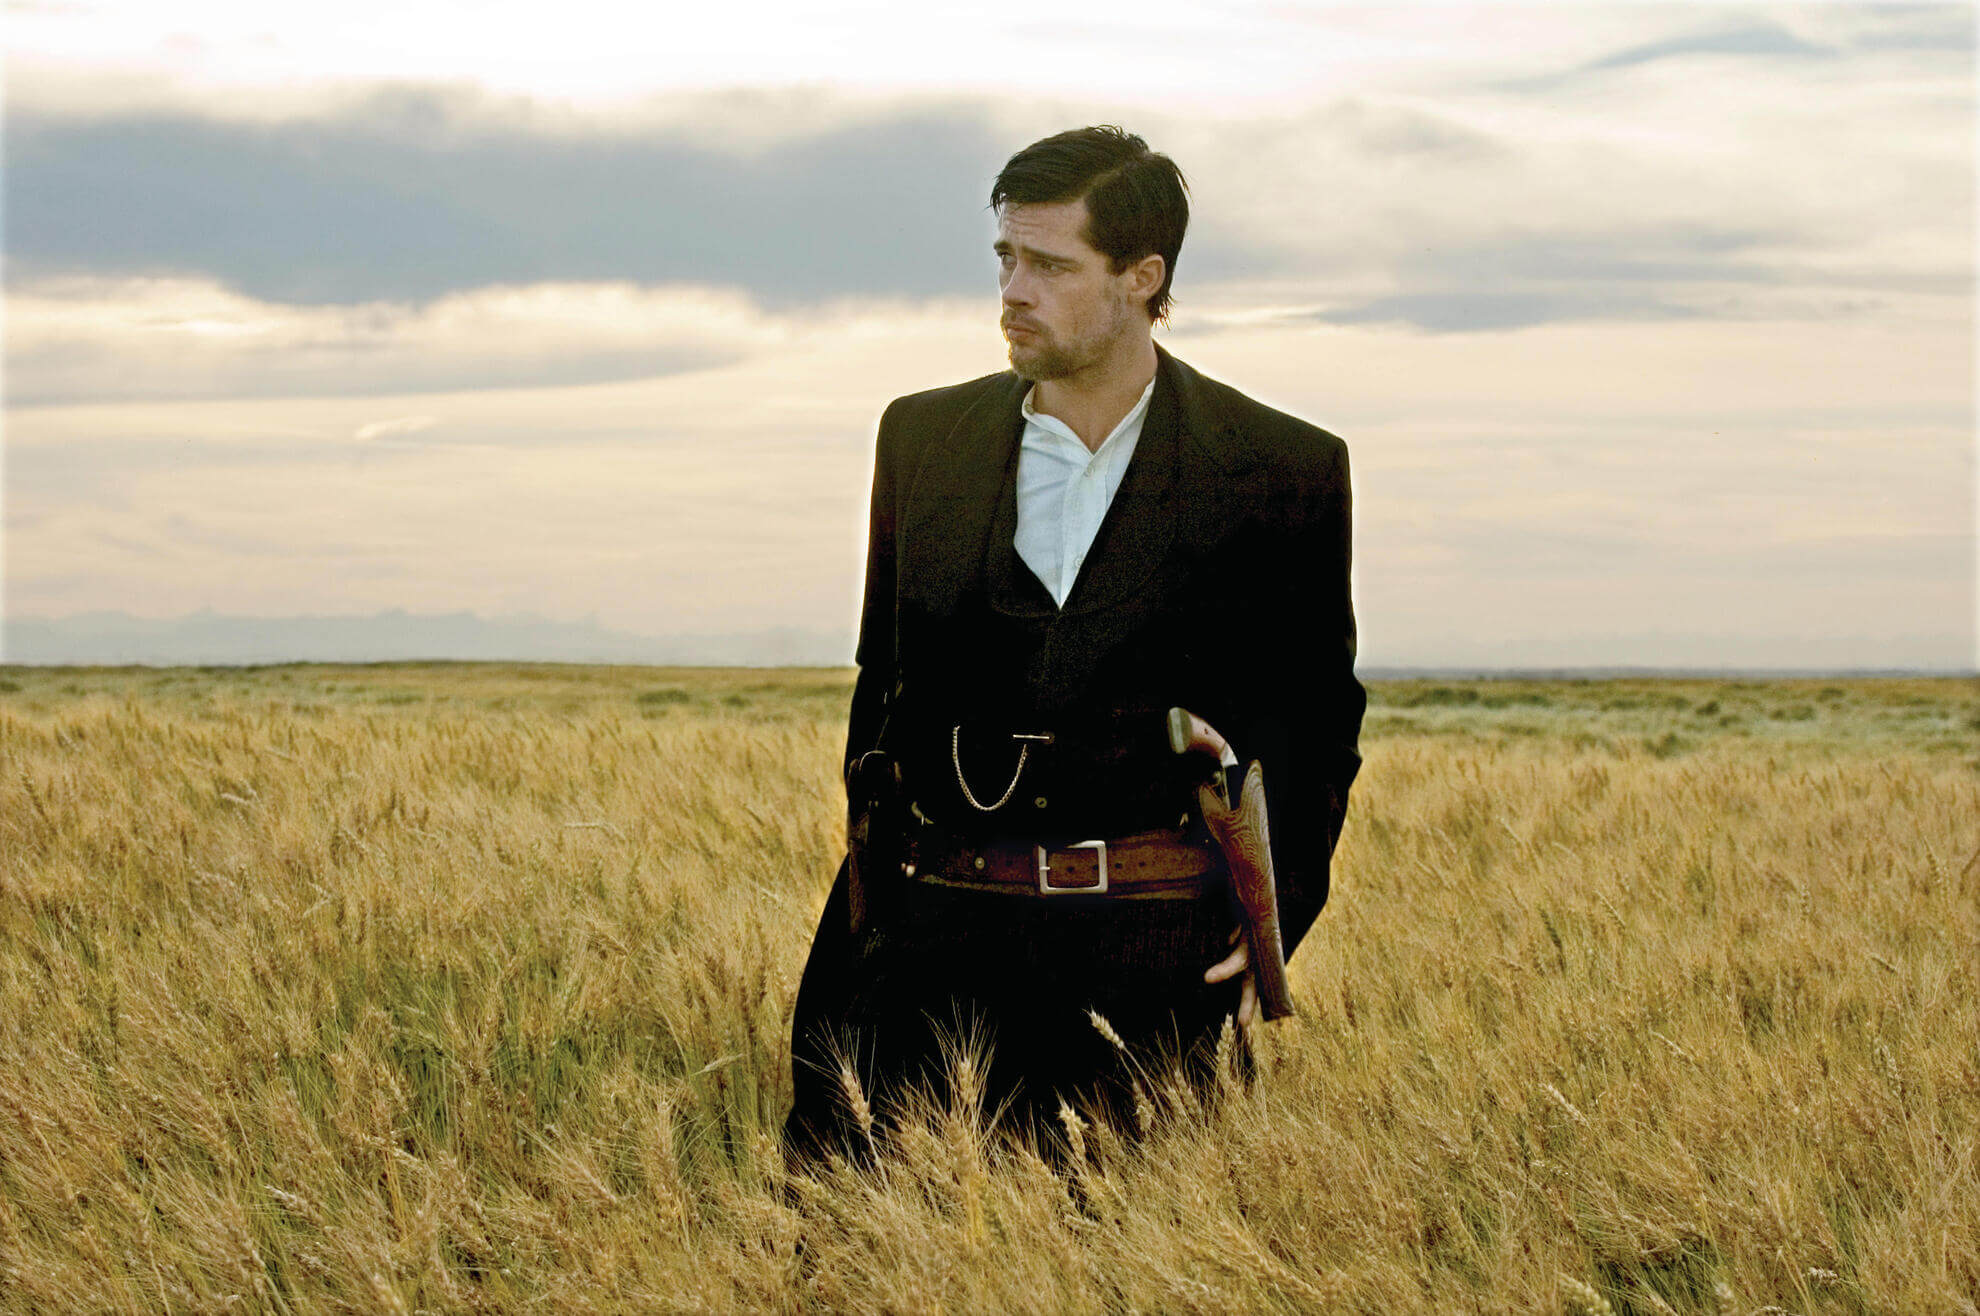 Brad Pitt standing in field in The Assassination of Jesse James by the Coward Robert Ford (2007)